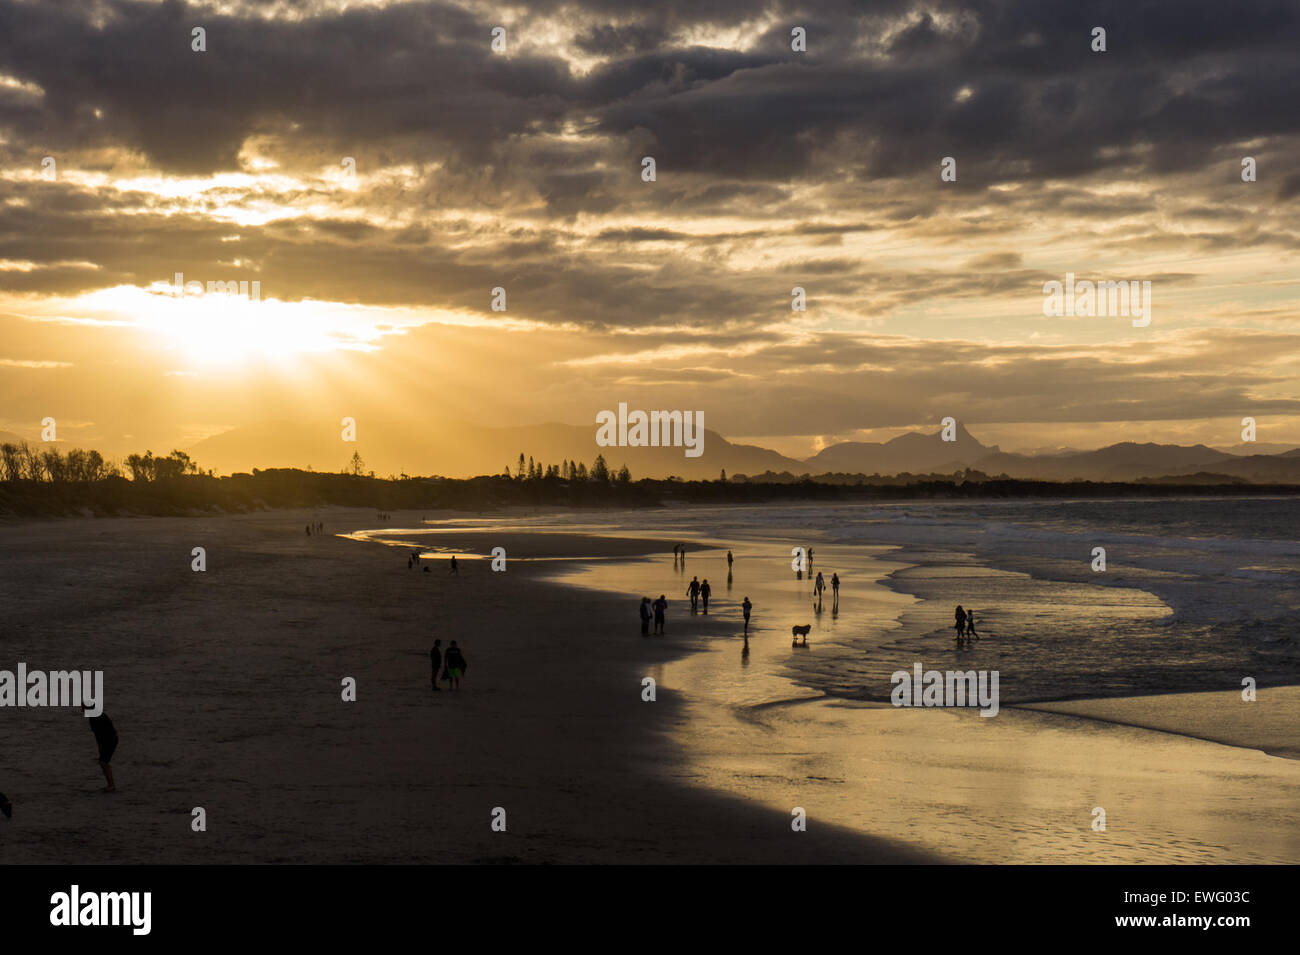 People on Ocean Beach at Sunset - Stock Image